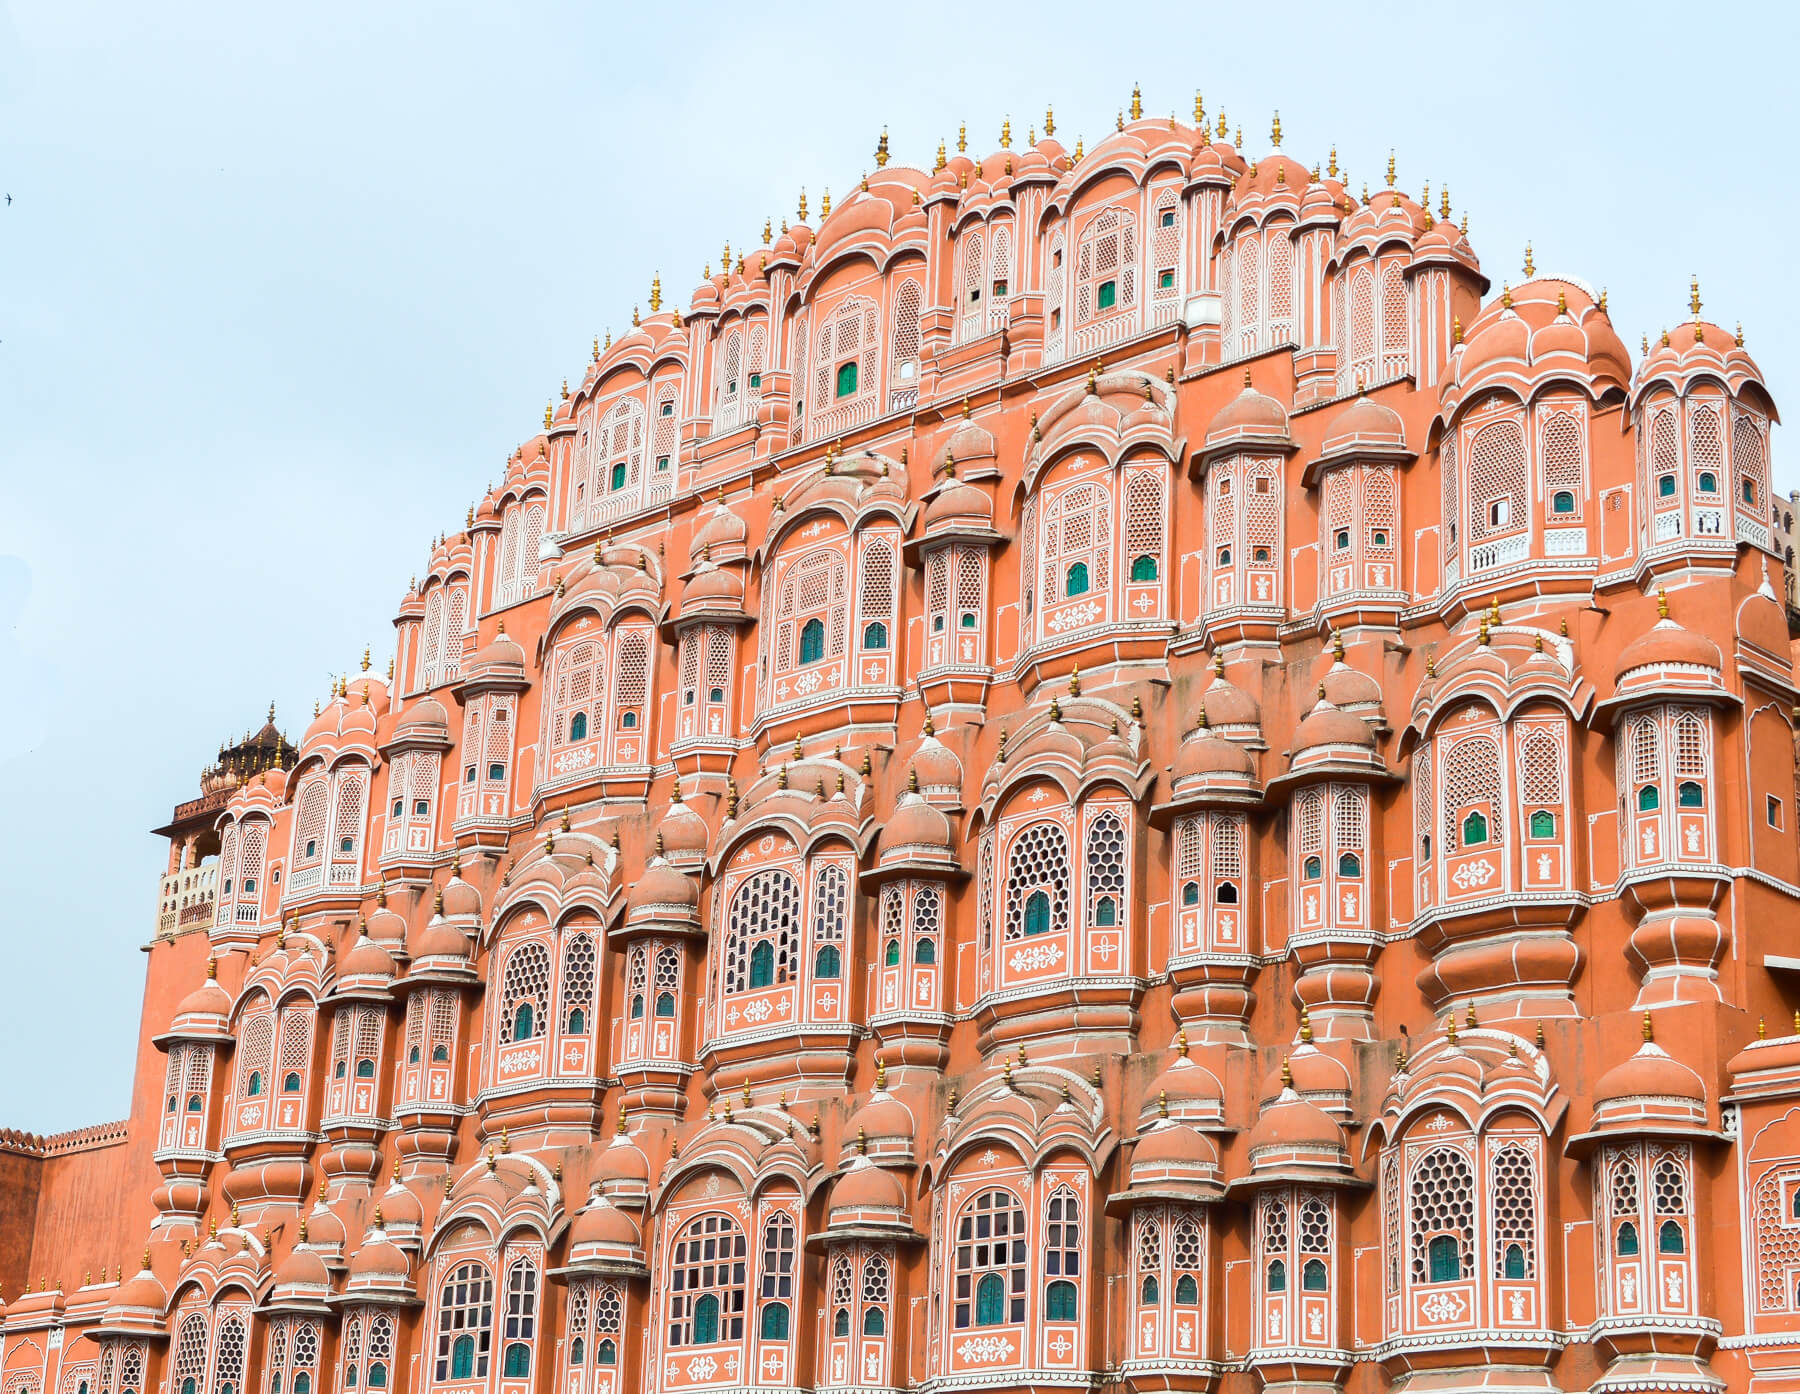 Famous copper palace in Jaipur - Orange structure with white detailed windows